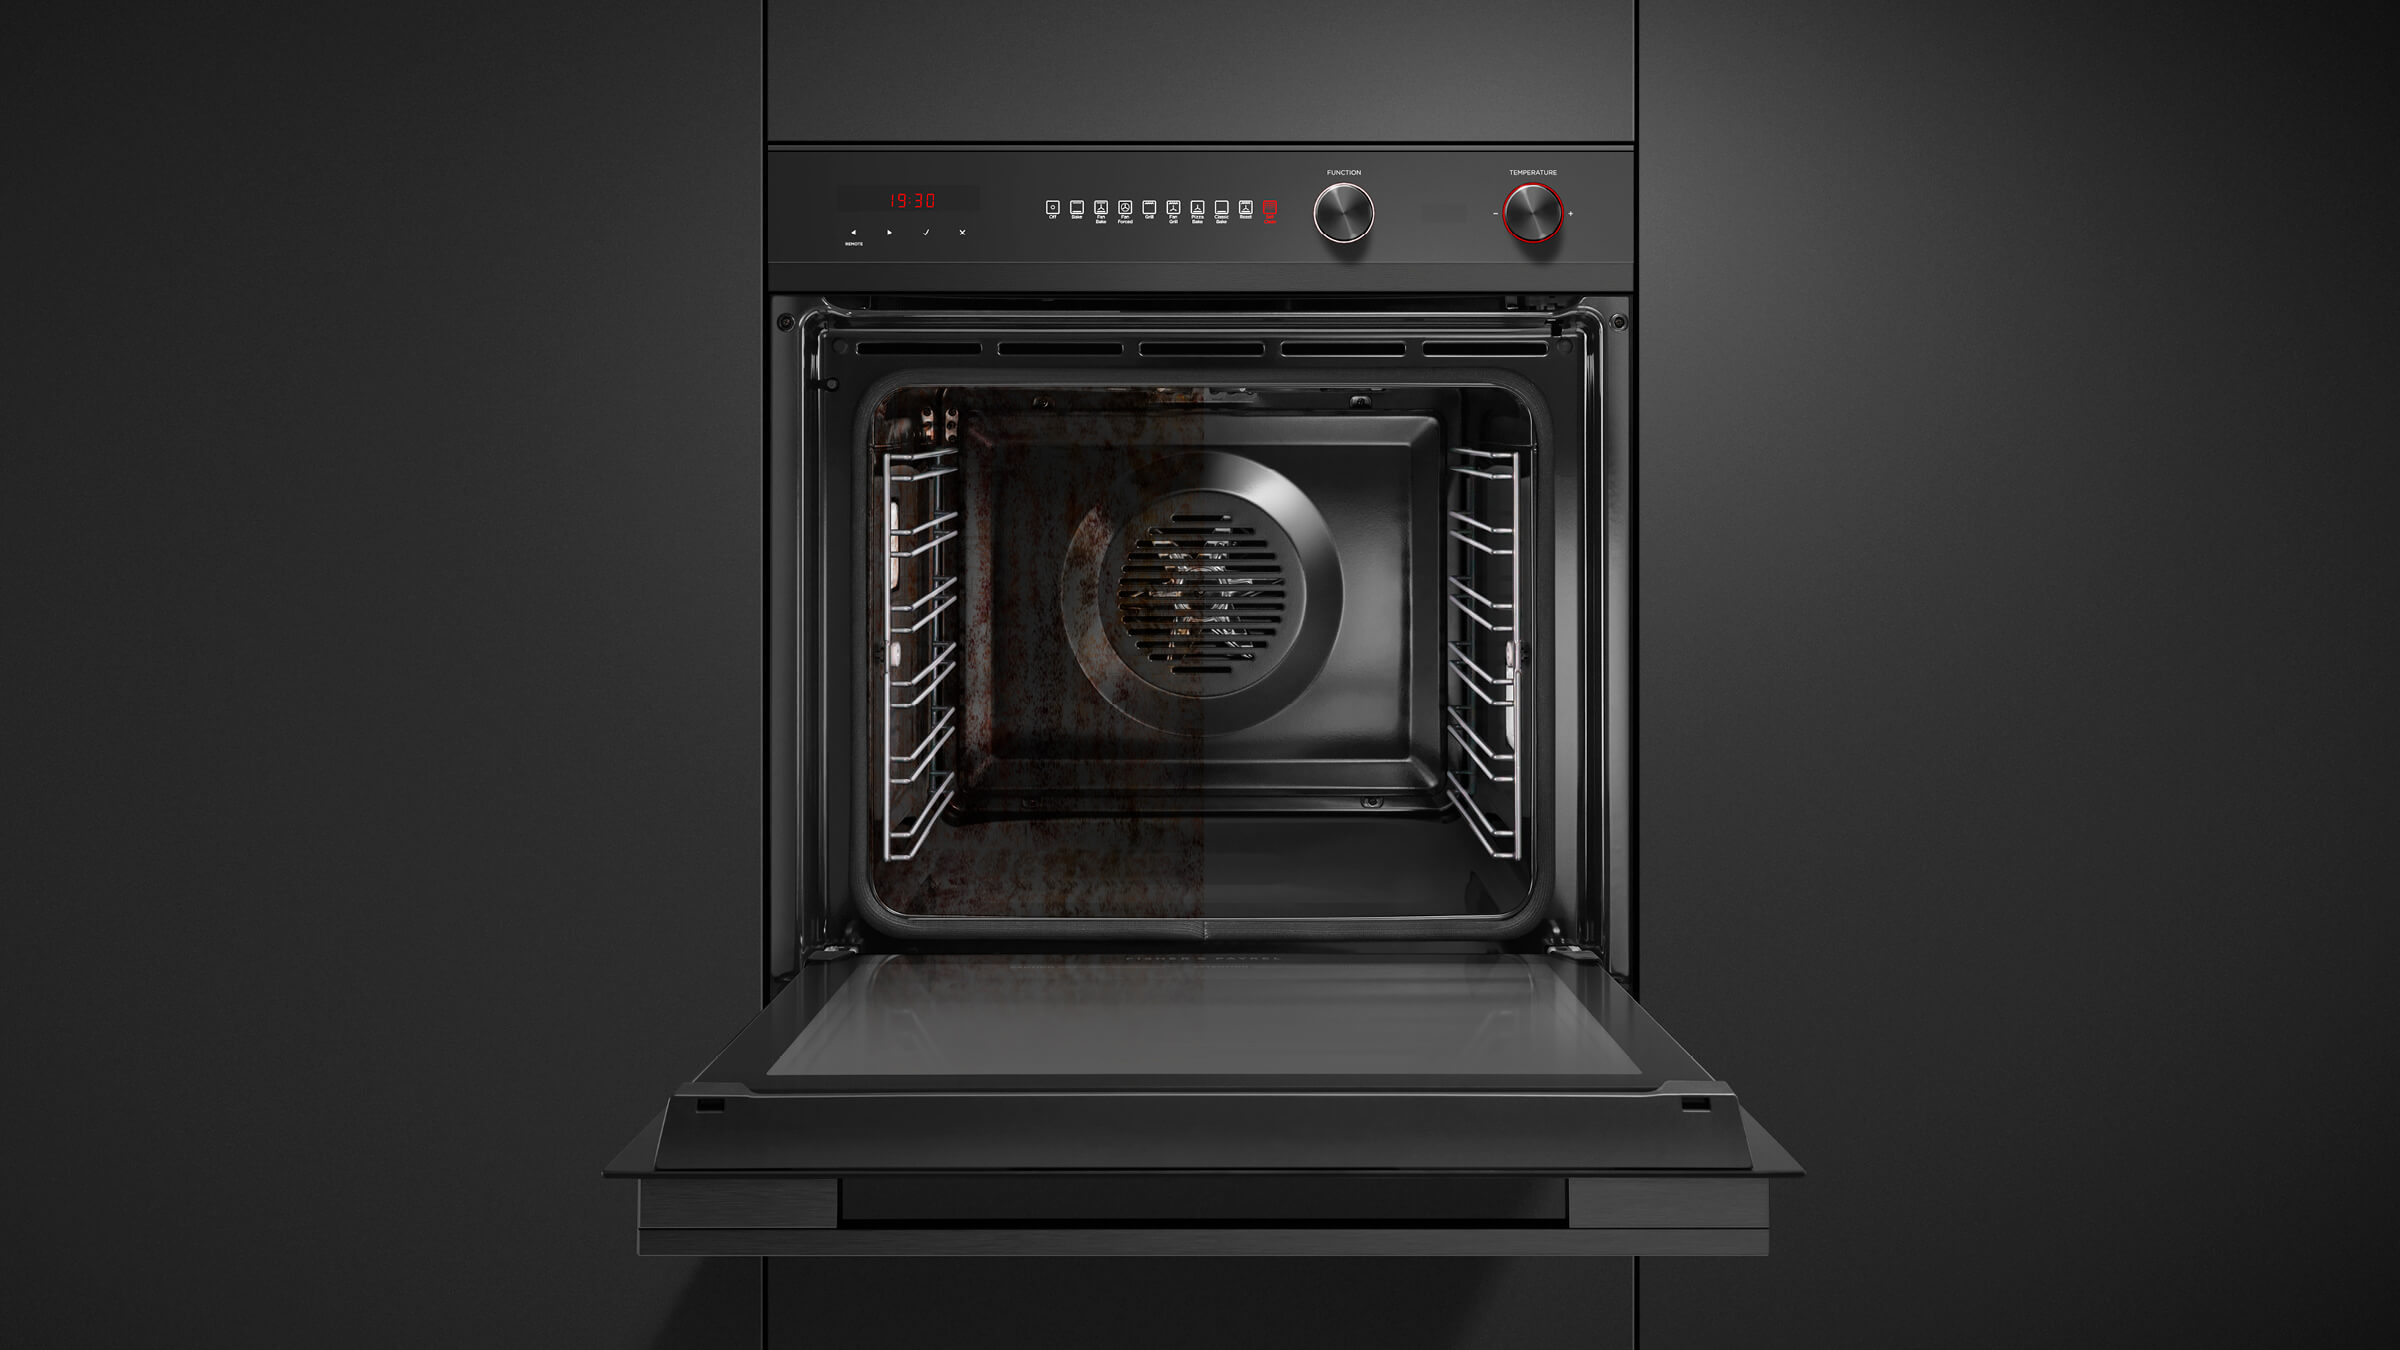 Best Pyrolytic Oven Fisher And Paykel 60cm 9 Function 85l Built In Pyrolytic